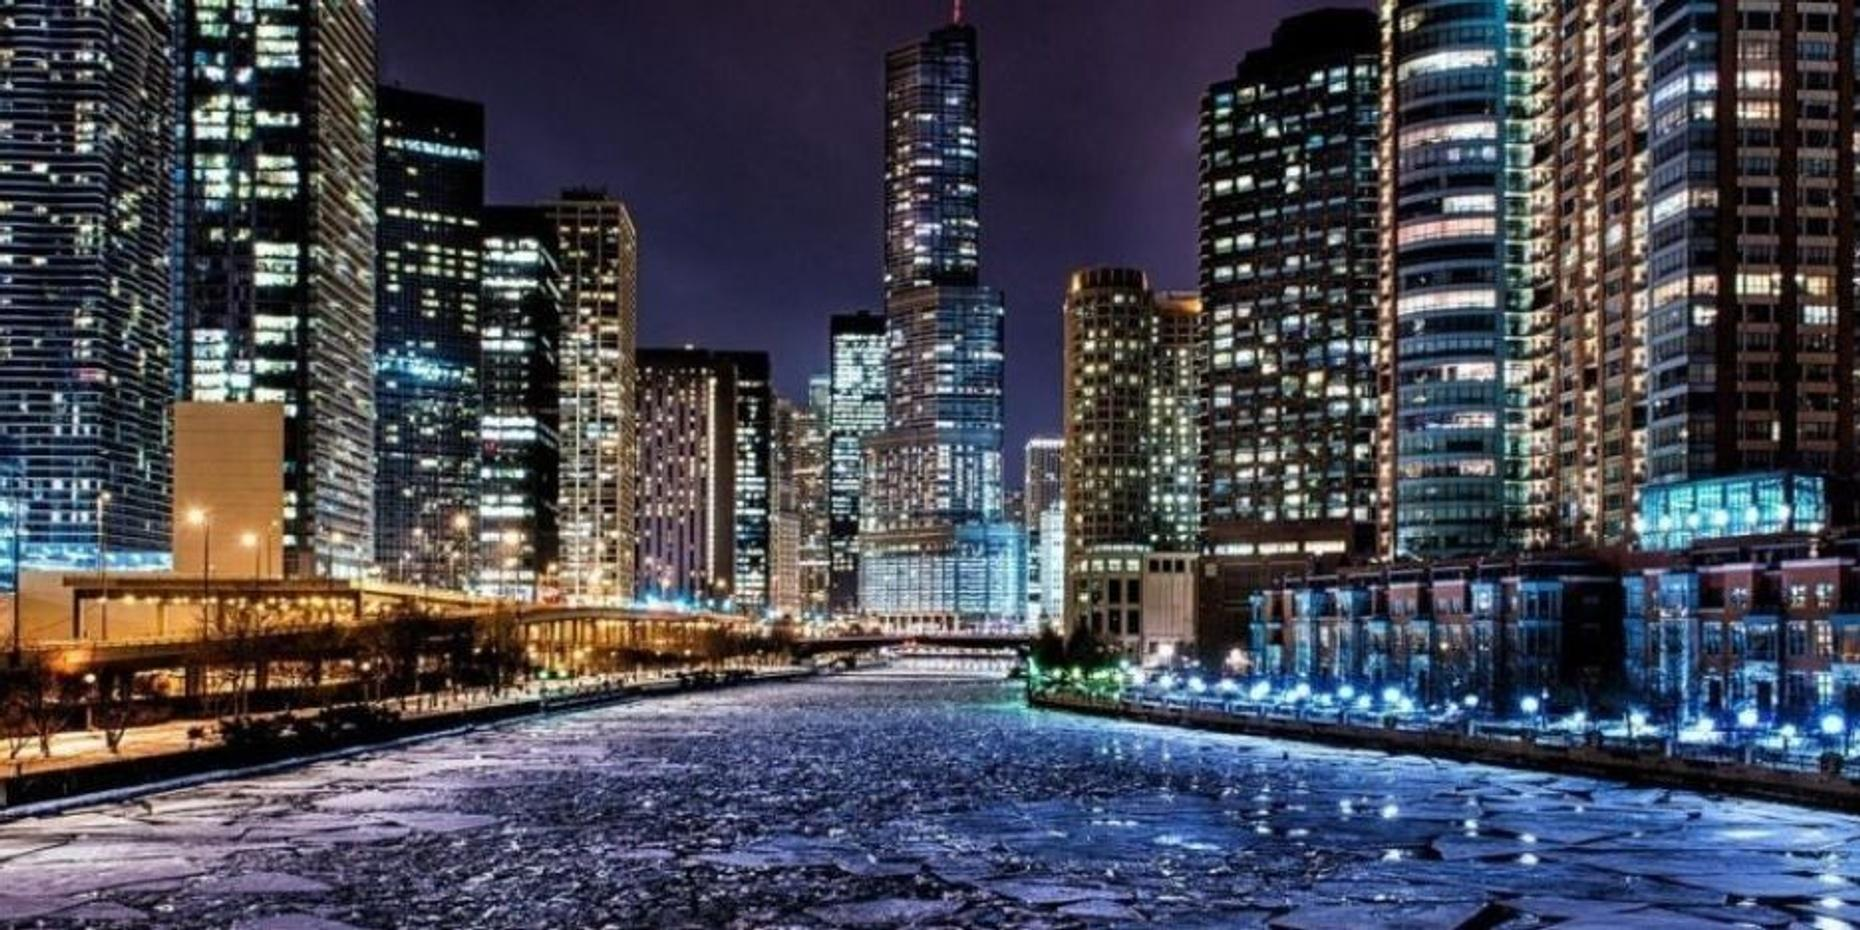 The Chicago River Boat Cocktail Cruise